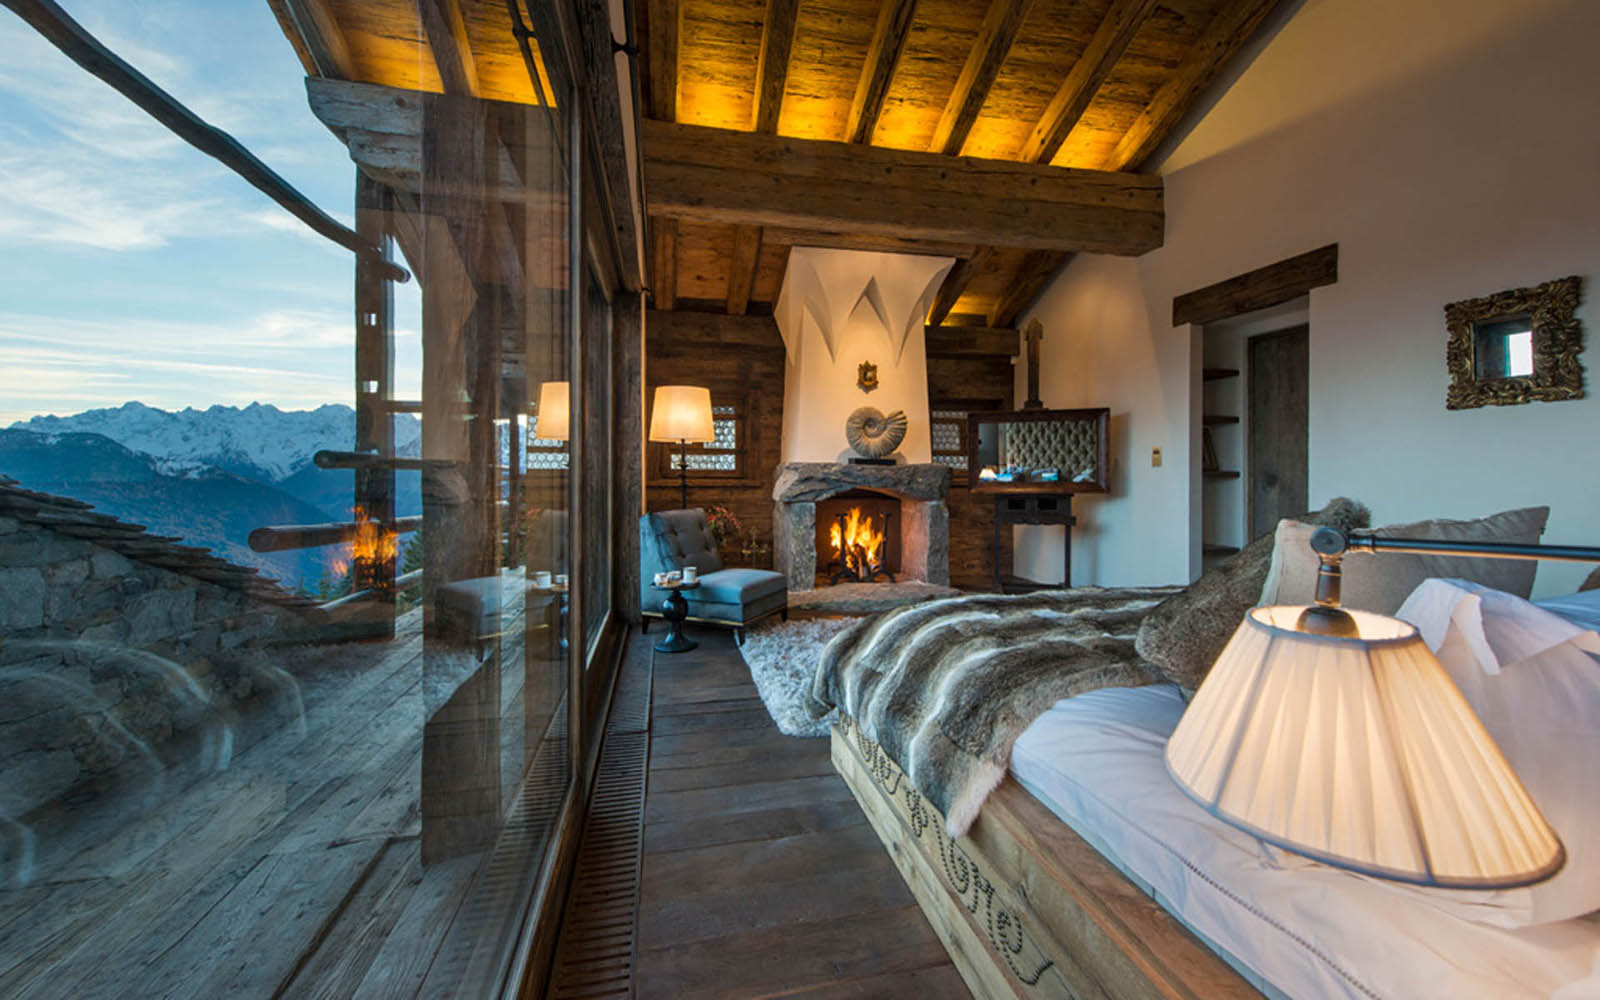 Les trois couronnes eco friendly chalet in verbier for Decoration interieur chalet montagne